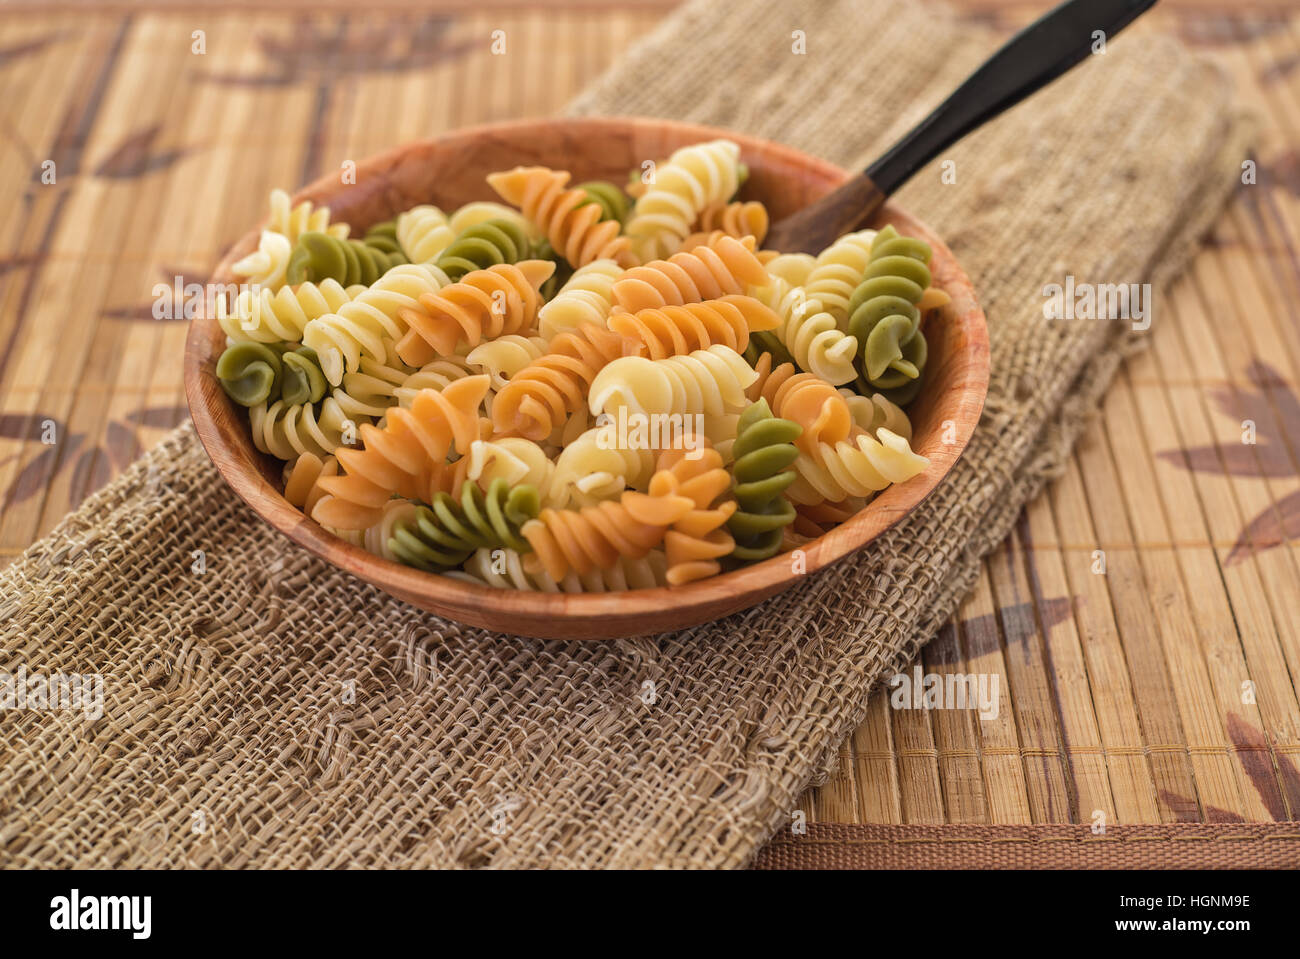 Close up of a wooden bowl with pasta on a burlap table cloth - Stock Image